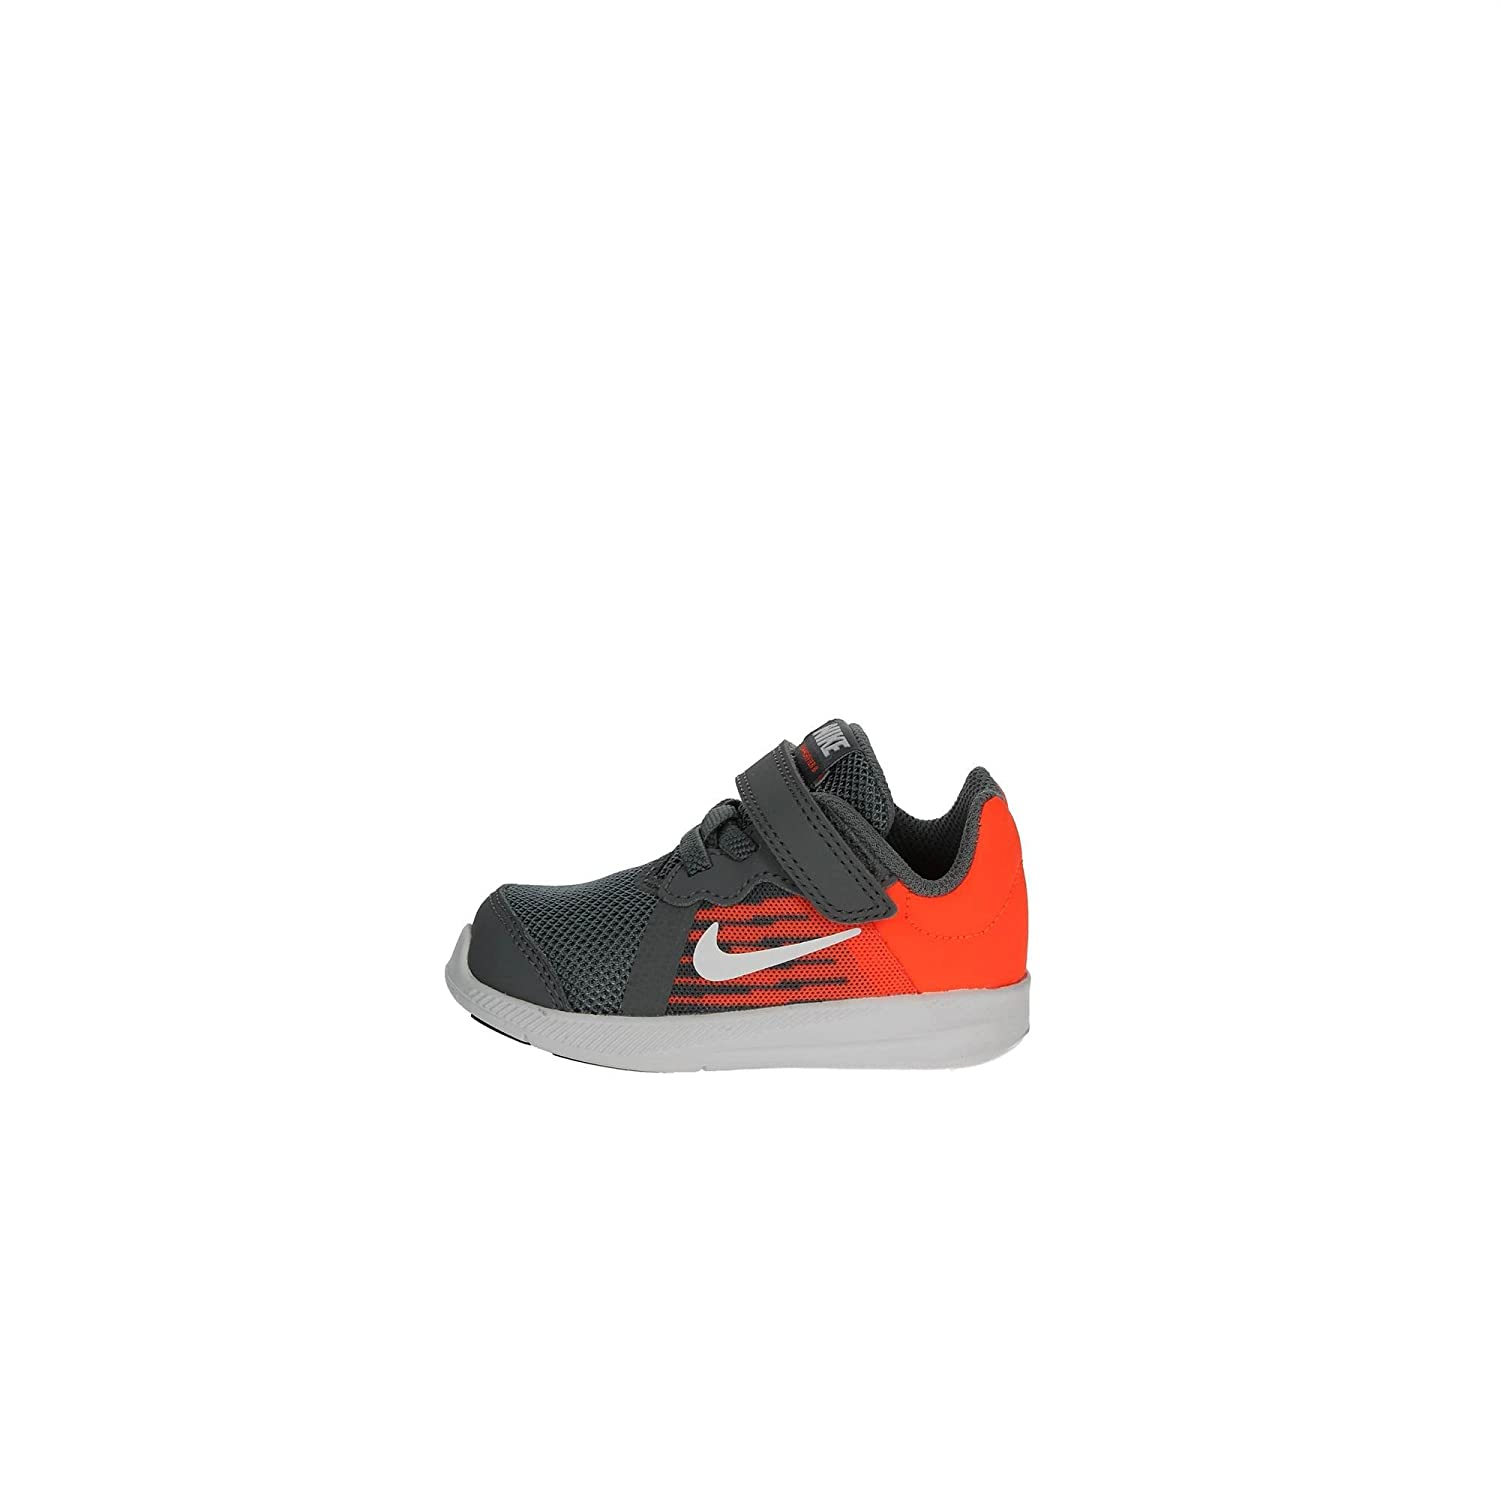 buying now limited guantity on feet images of Nike Unisex-Kinder Downshifter 8 (TDV) Laufschuhe - lccs.org.sg